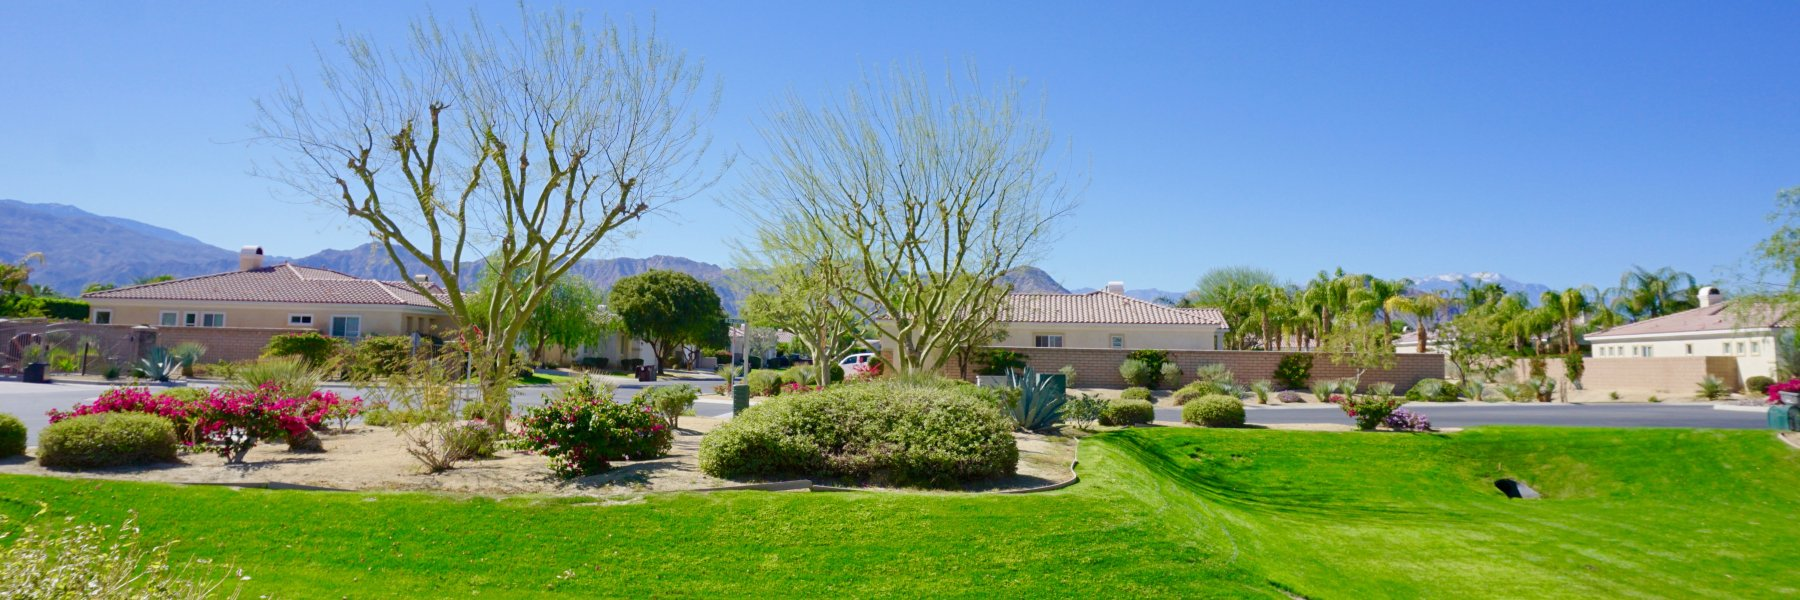 Estacio is a community of homes in Indio California